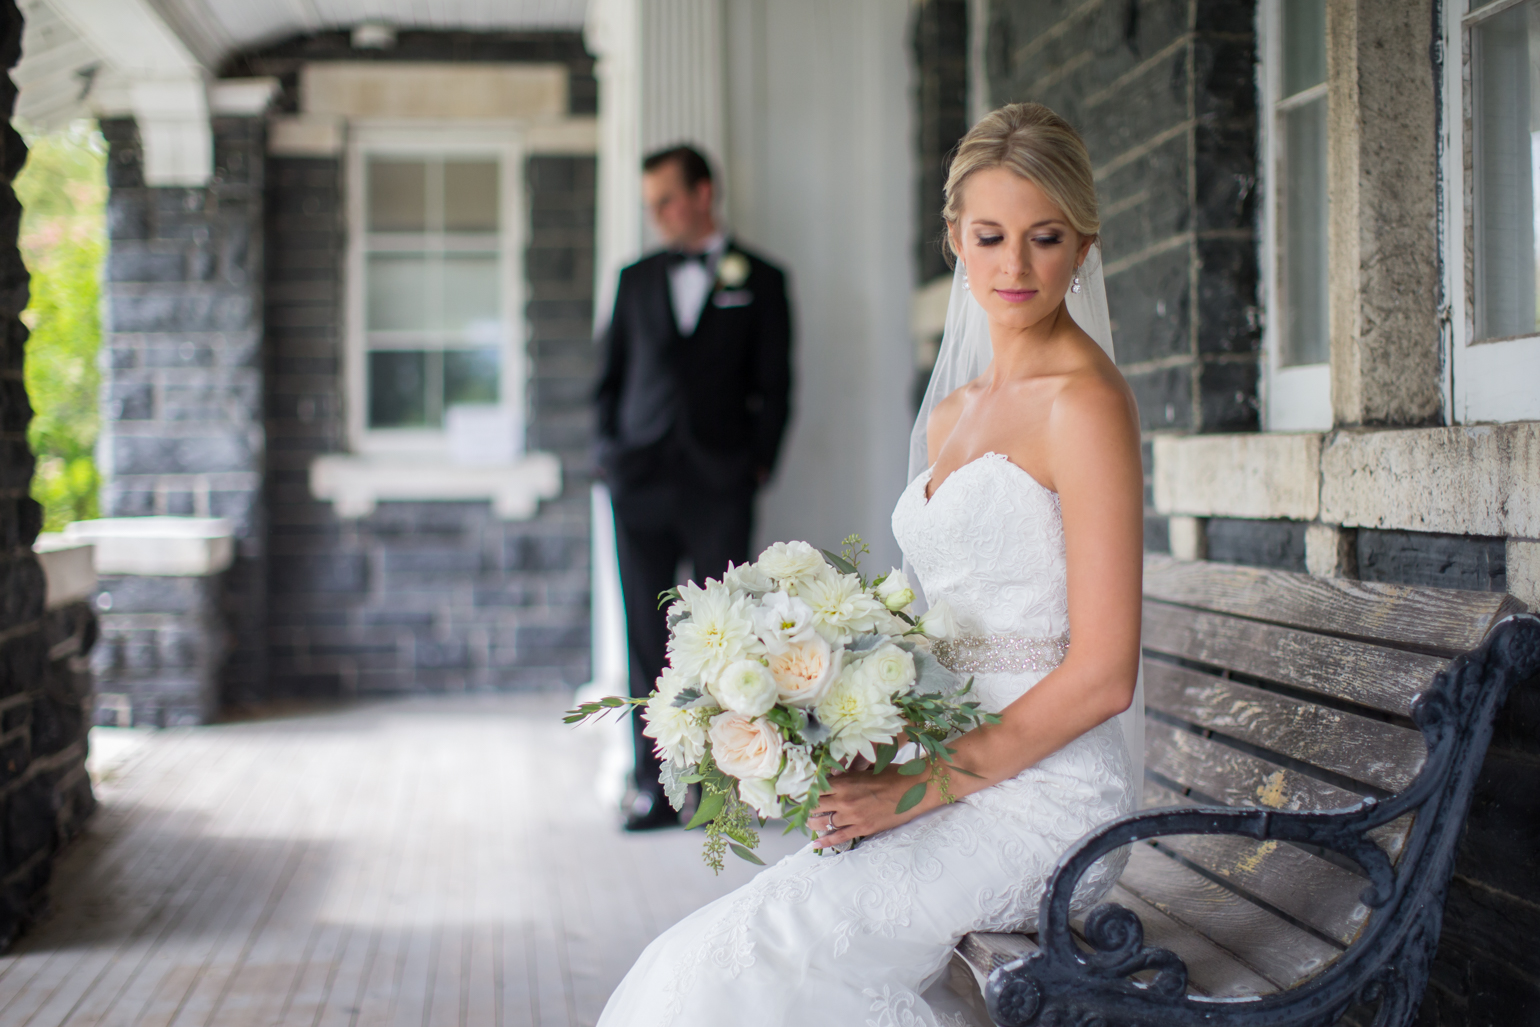 wedding, sudbury wedding, akaiserphoto, wedding photographer, sudbury wedding photographer